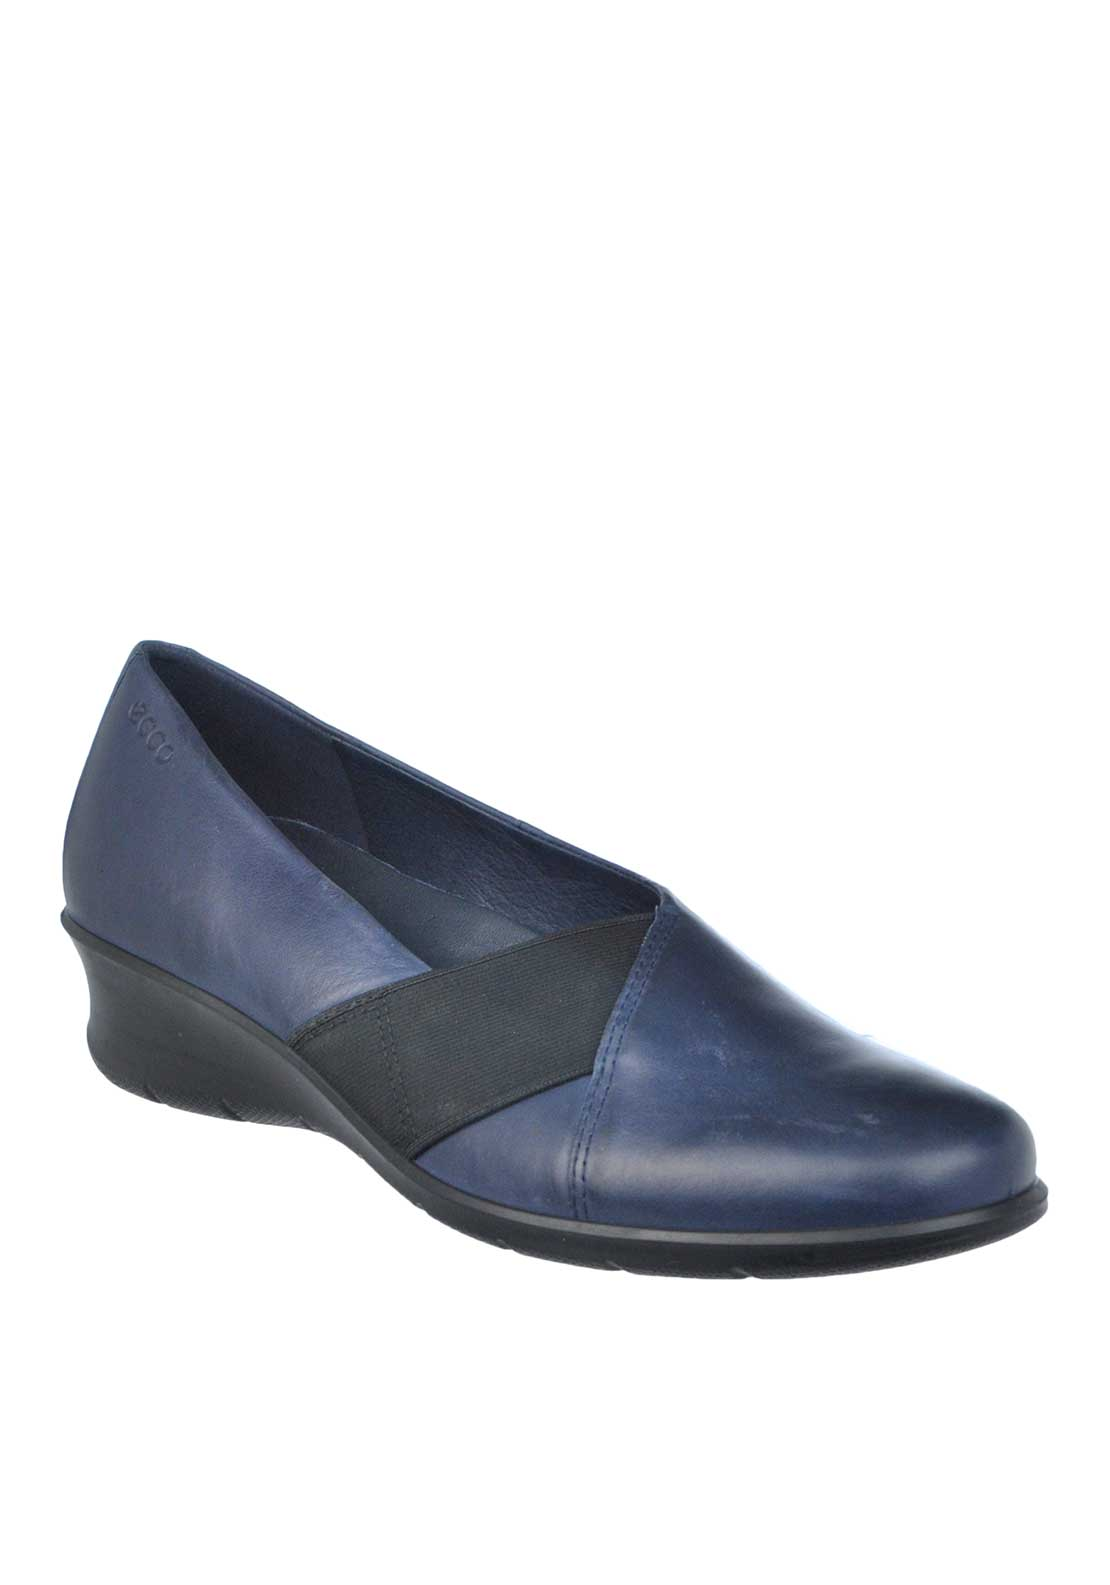 Ecco Womens Leather Elasticated Panel Wedged Shoe, Navy